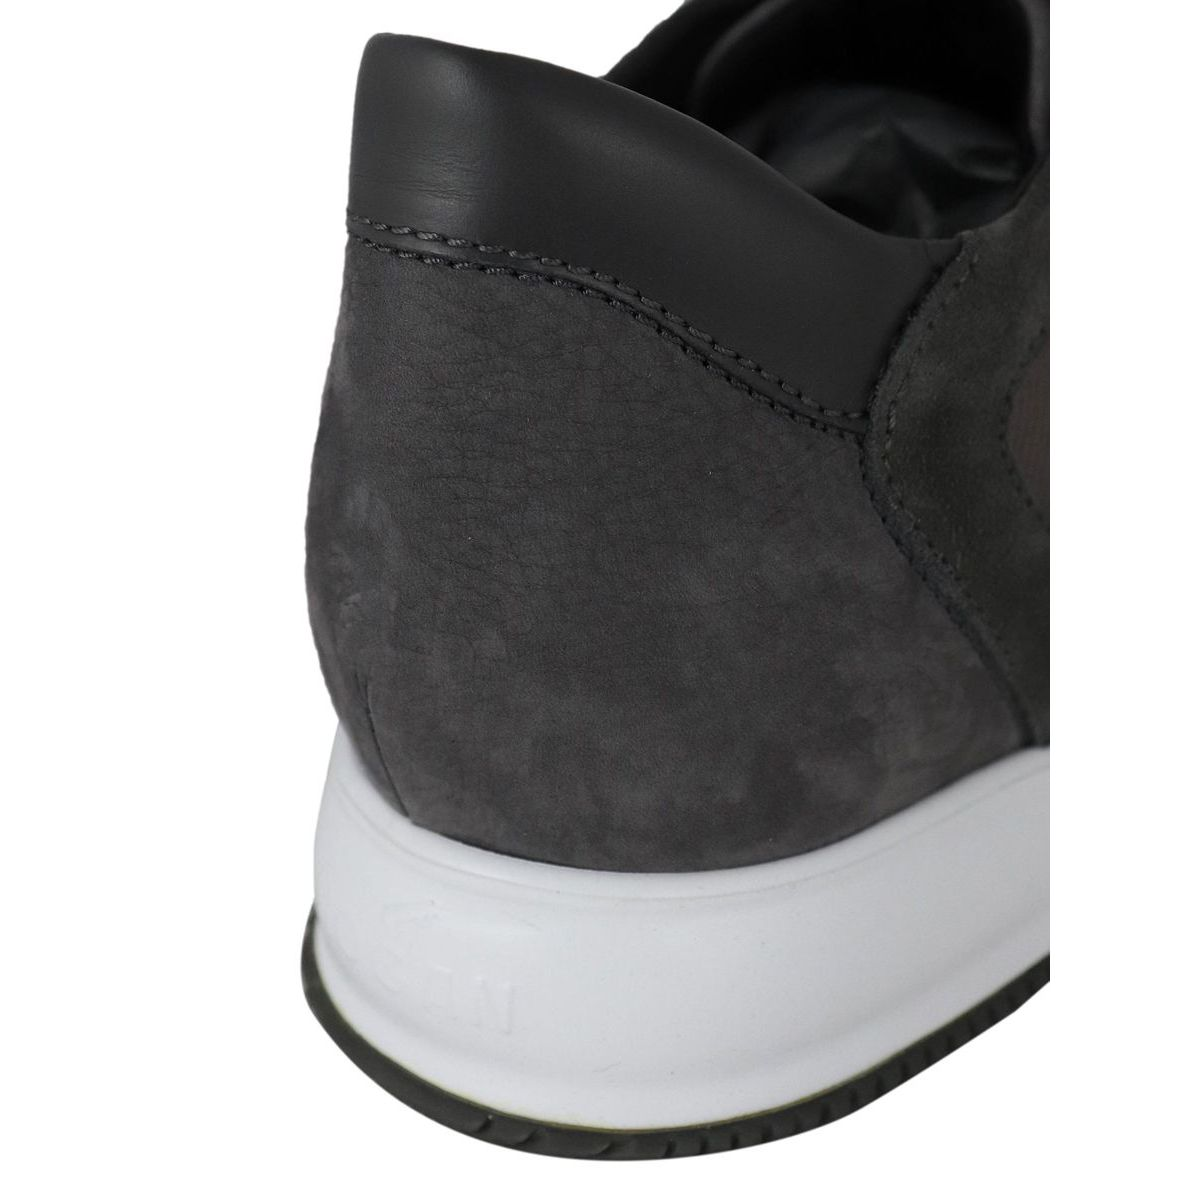 New interactive sneakers in suede leather Moro / gray Hogan